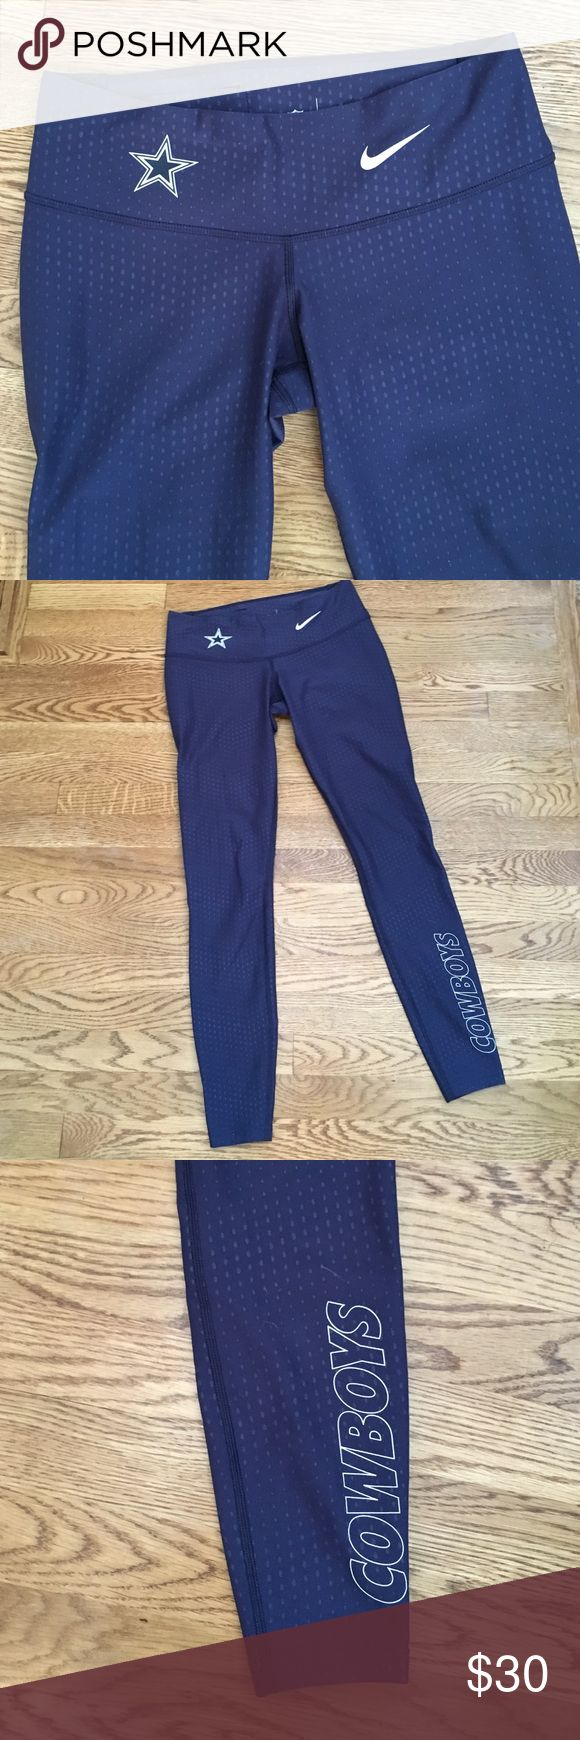 New Listing!  Nike Legend Cowboys Leggings NIKE NFL Team Apparel- Dallas Cowboys Leggings. DRI-FIT polyester/spandex. Navy blue and white. Size small. Excellent preowned condition. Nike Pants Leggings